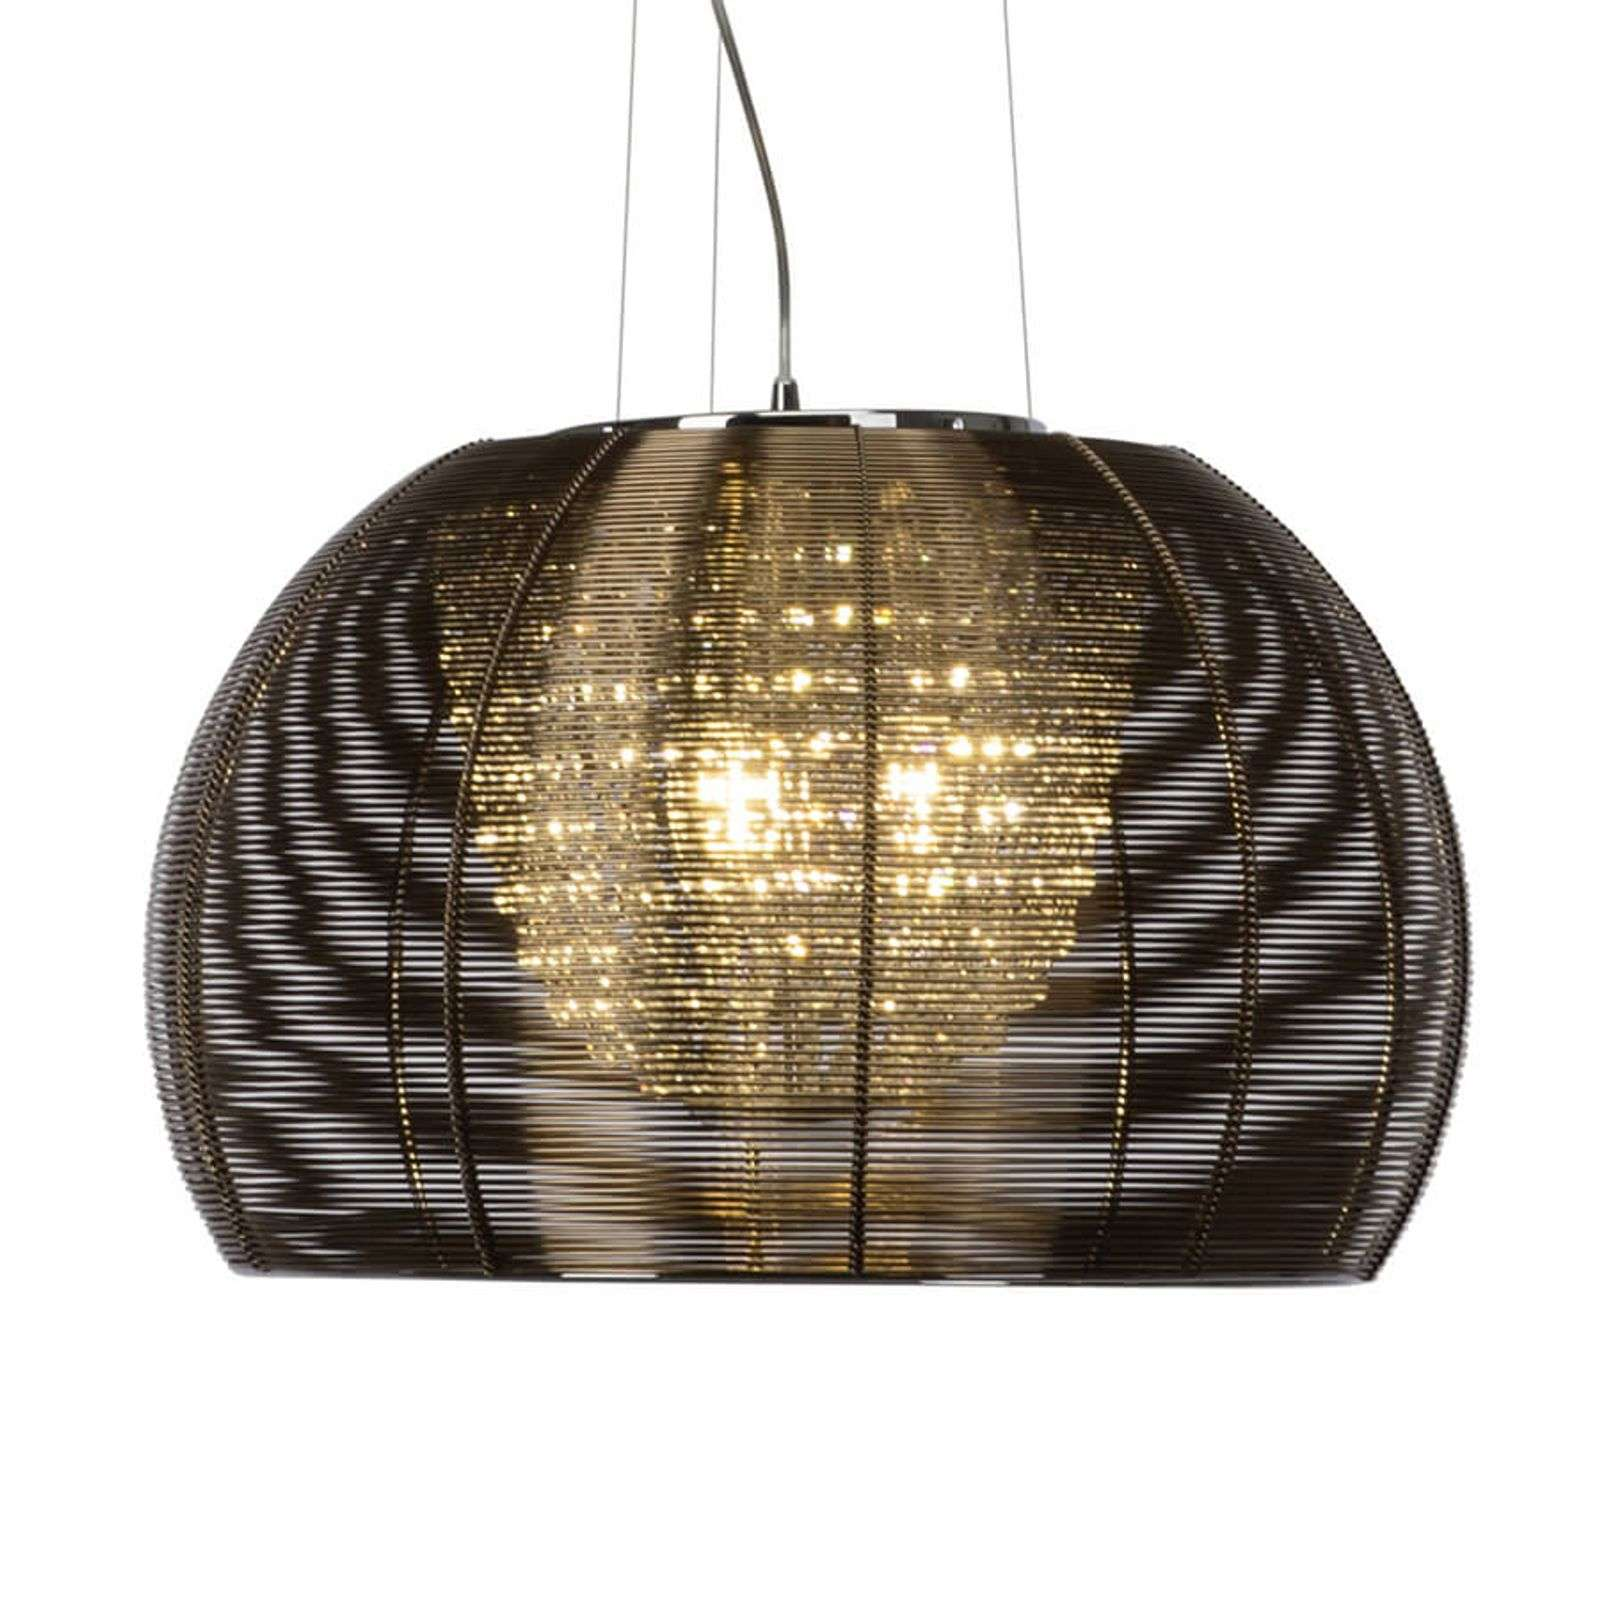 Glamoureuze hanglamp licht Discovery